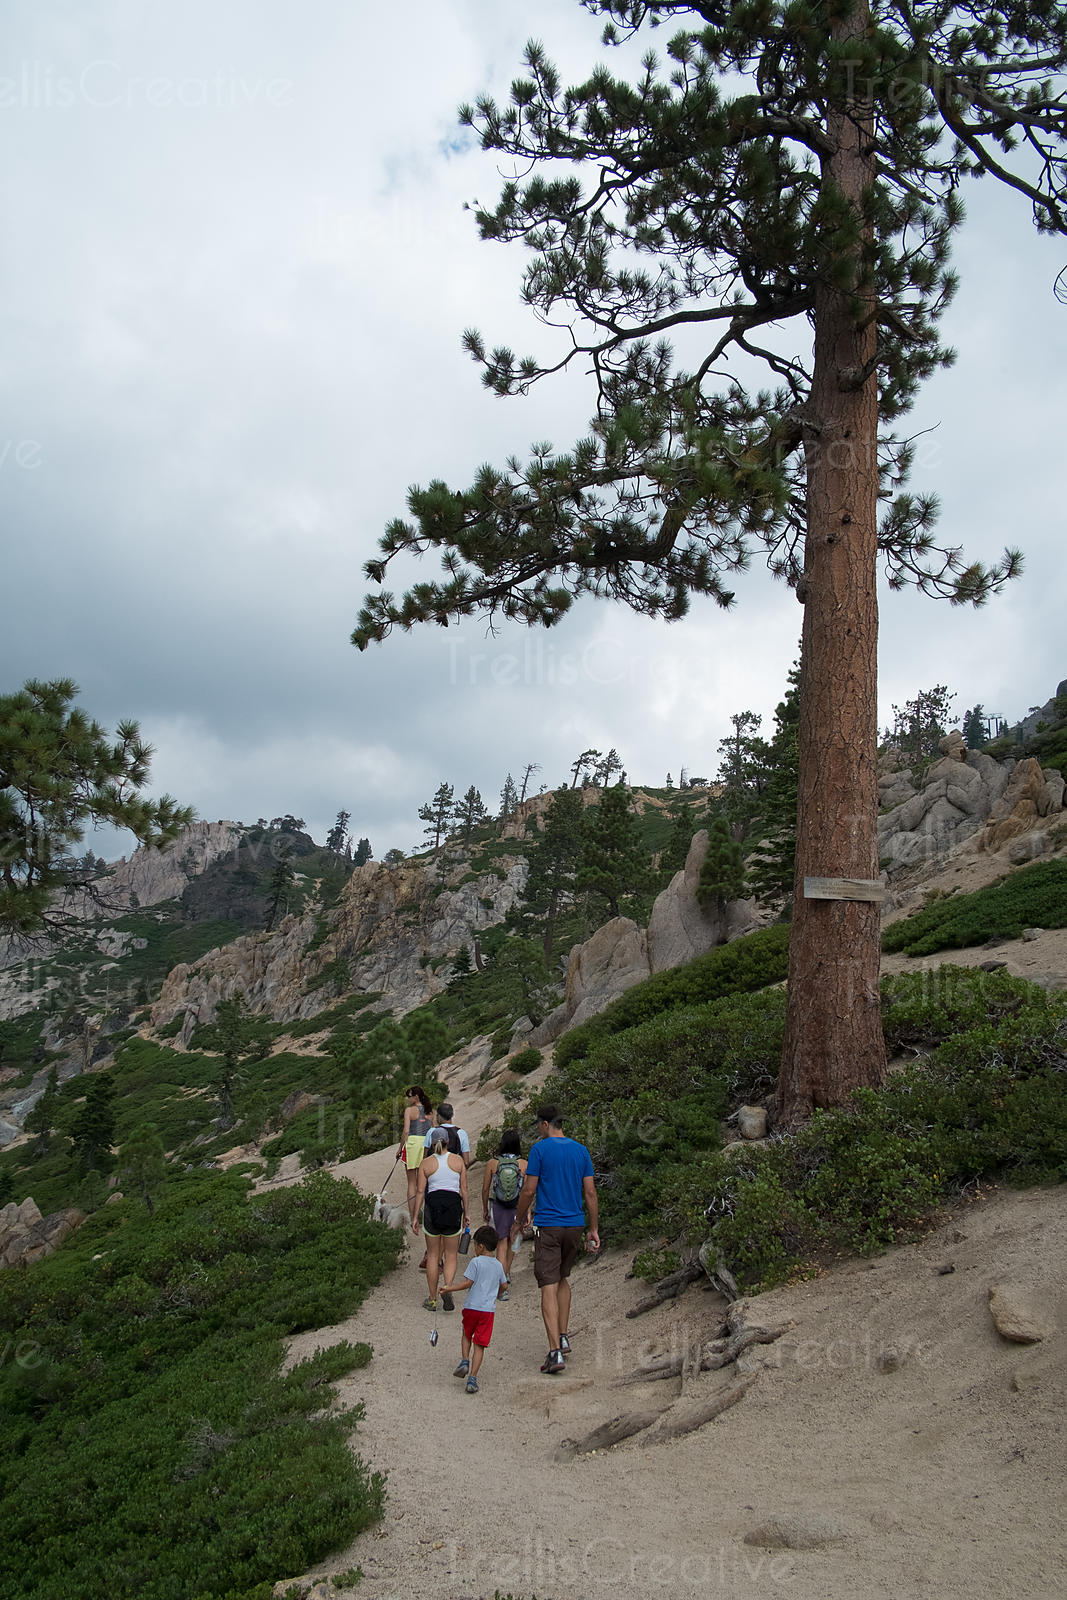 Rear view of people hiking on a trail, California, USA